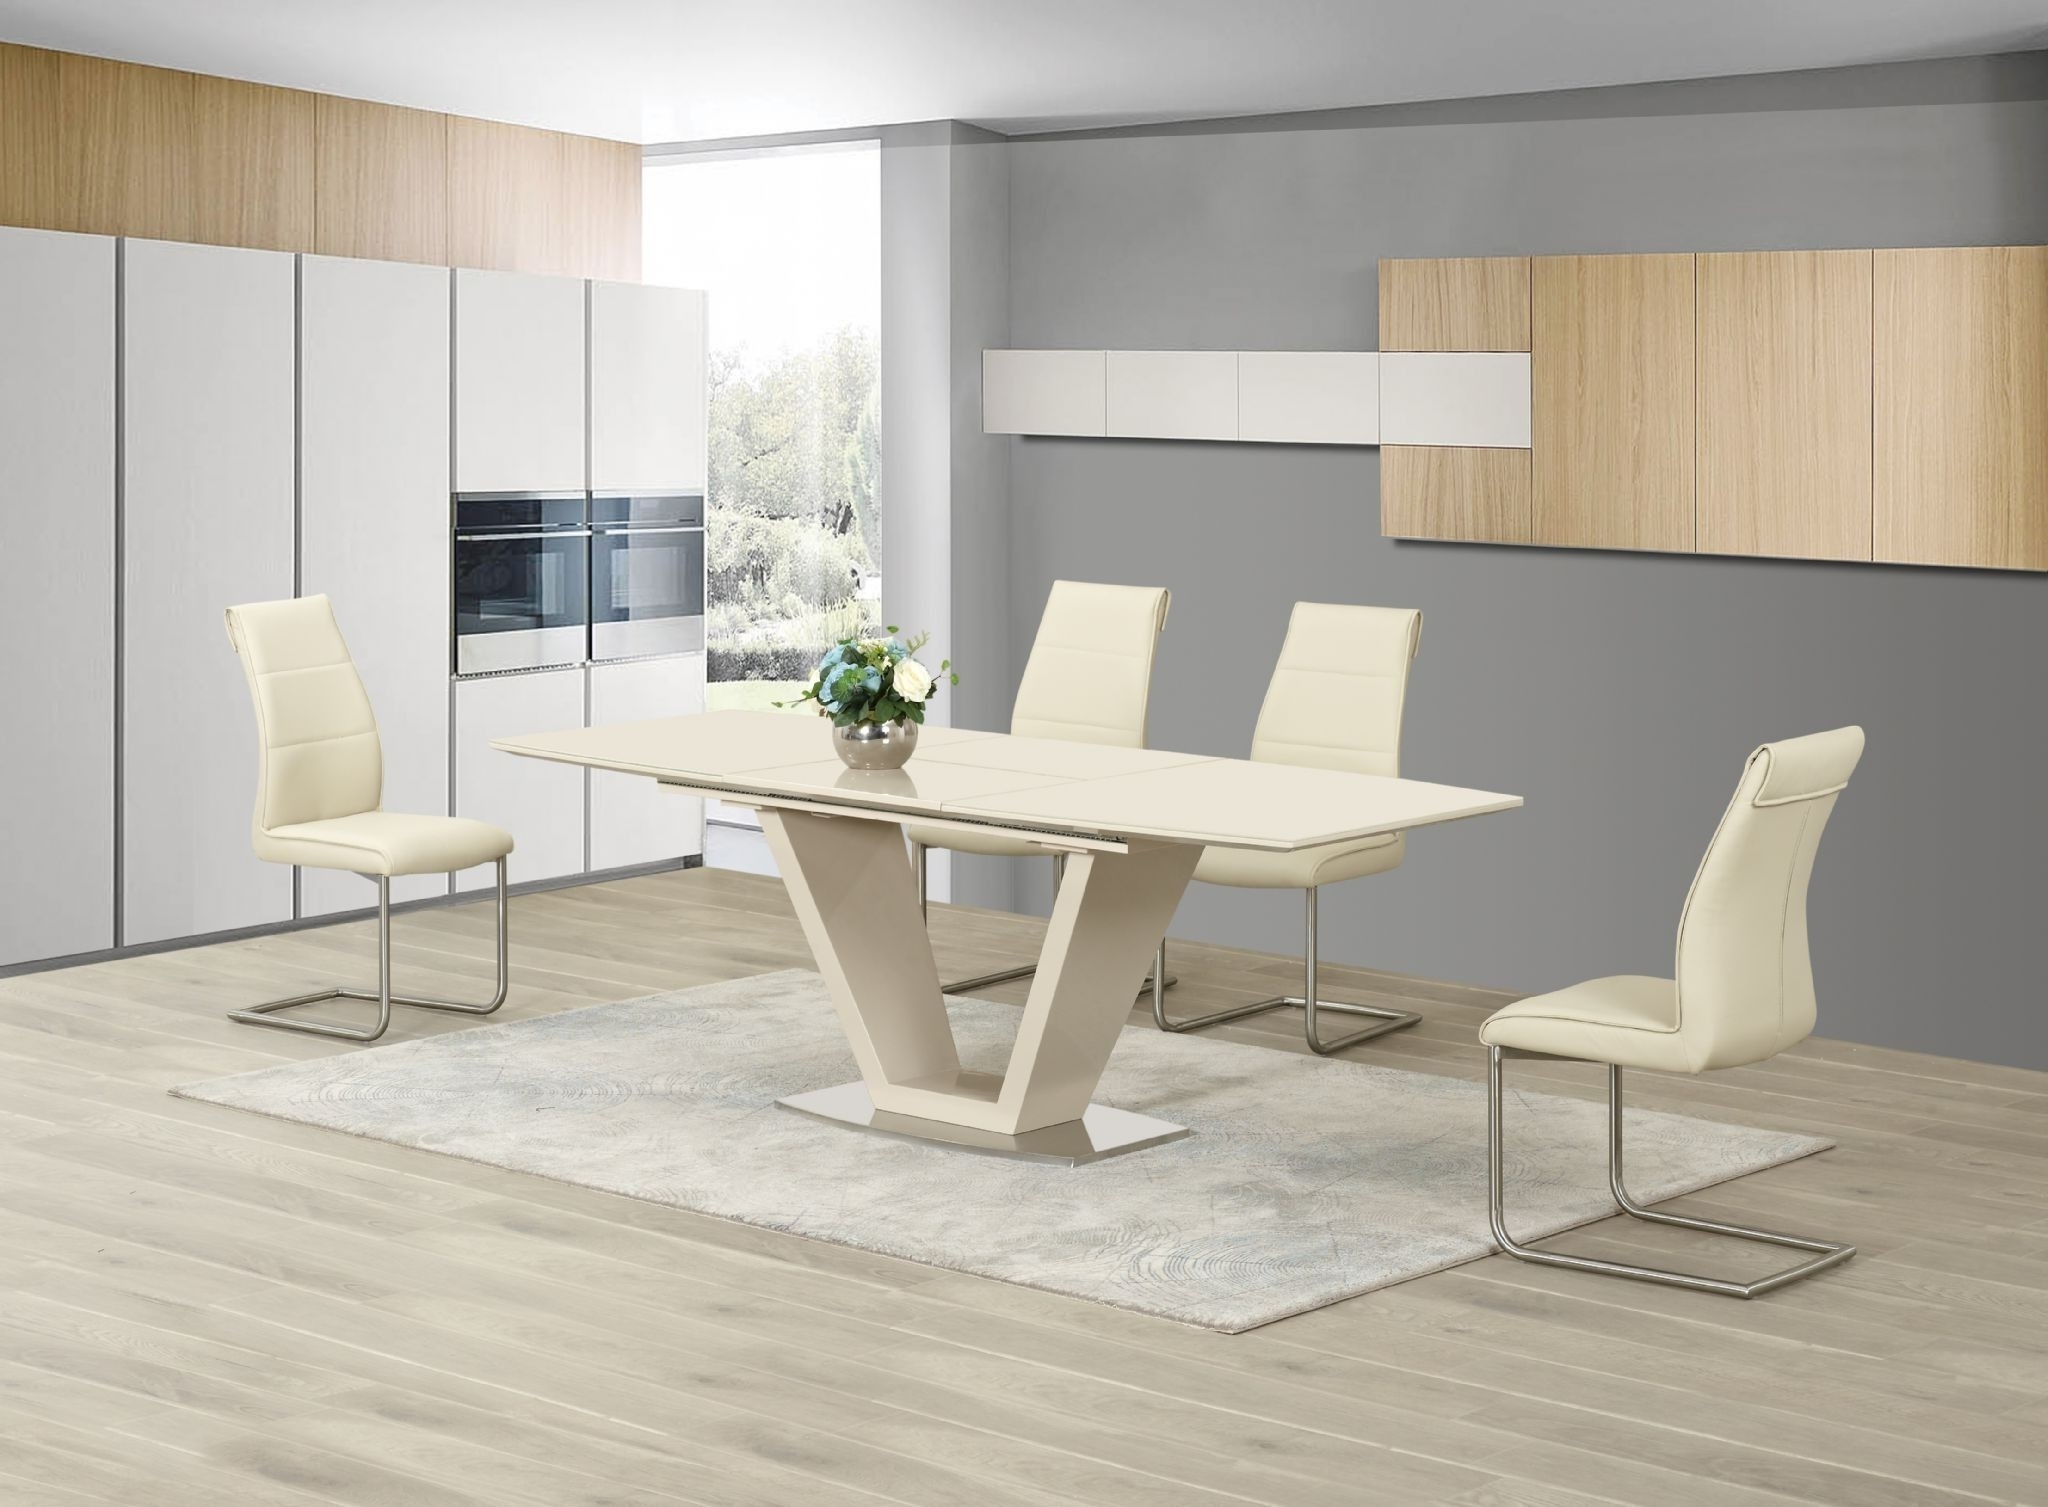 Preferred Floris Cream Gloss Extending Dining Table 160 220Cm Inside Hi Gloss Dining Tables (View 3 of 25)